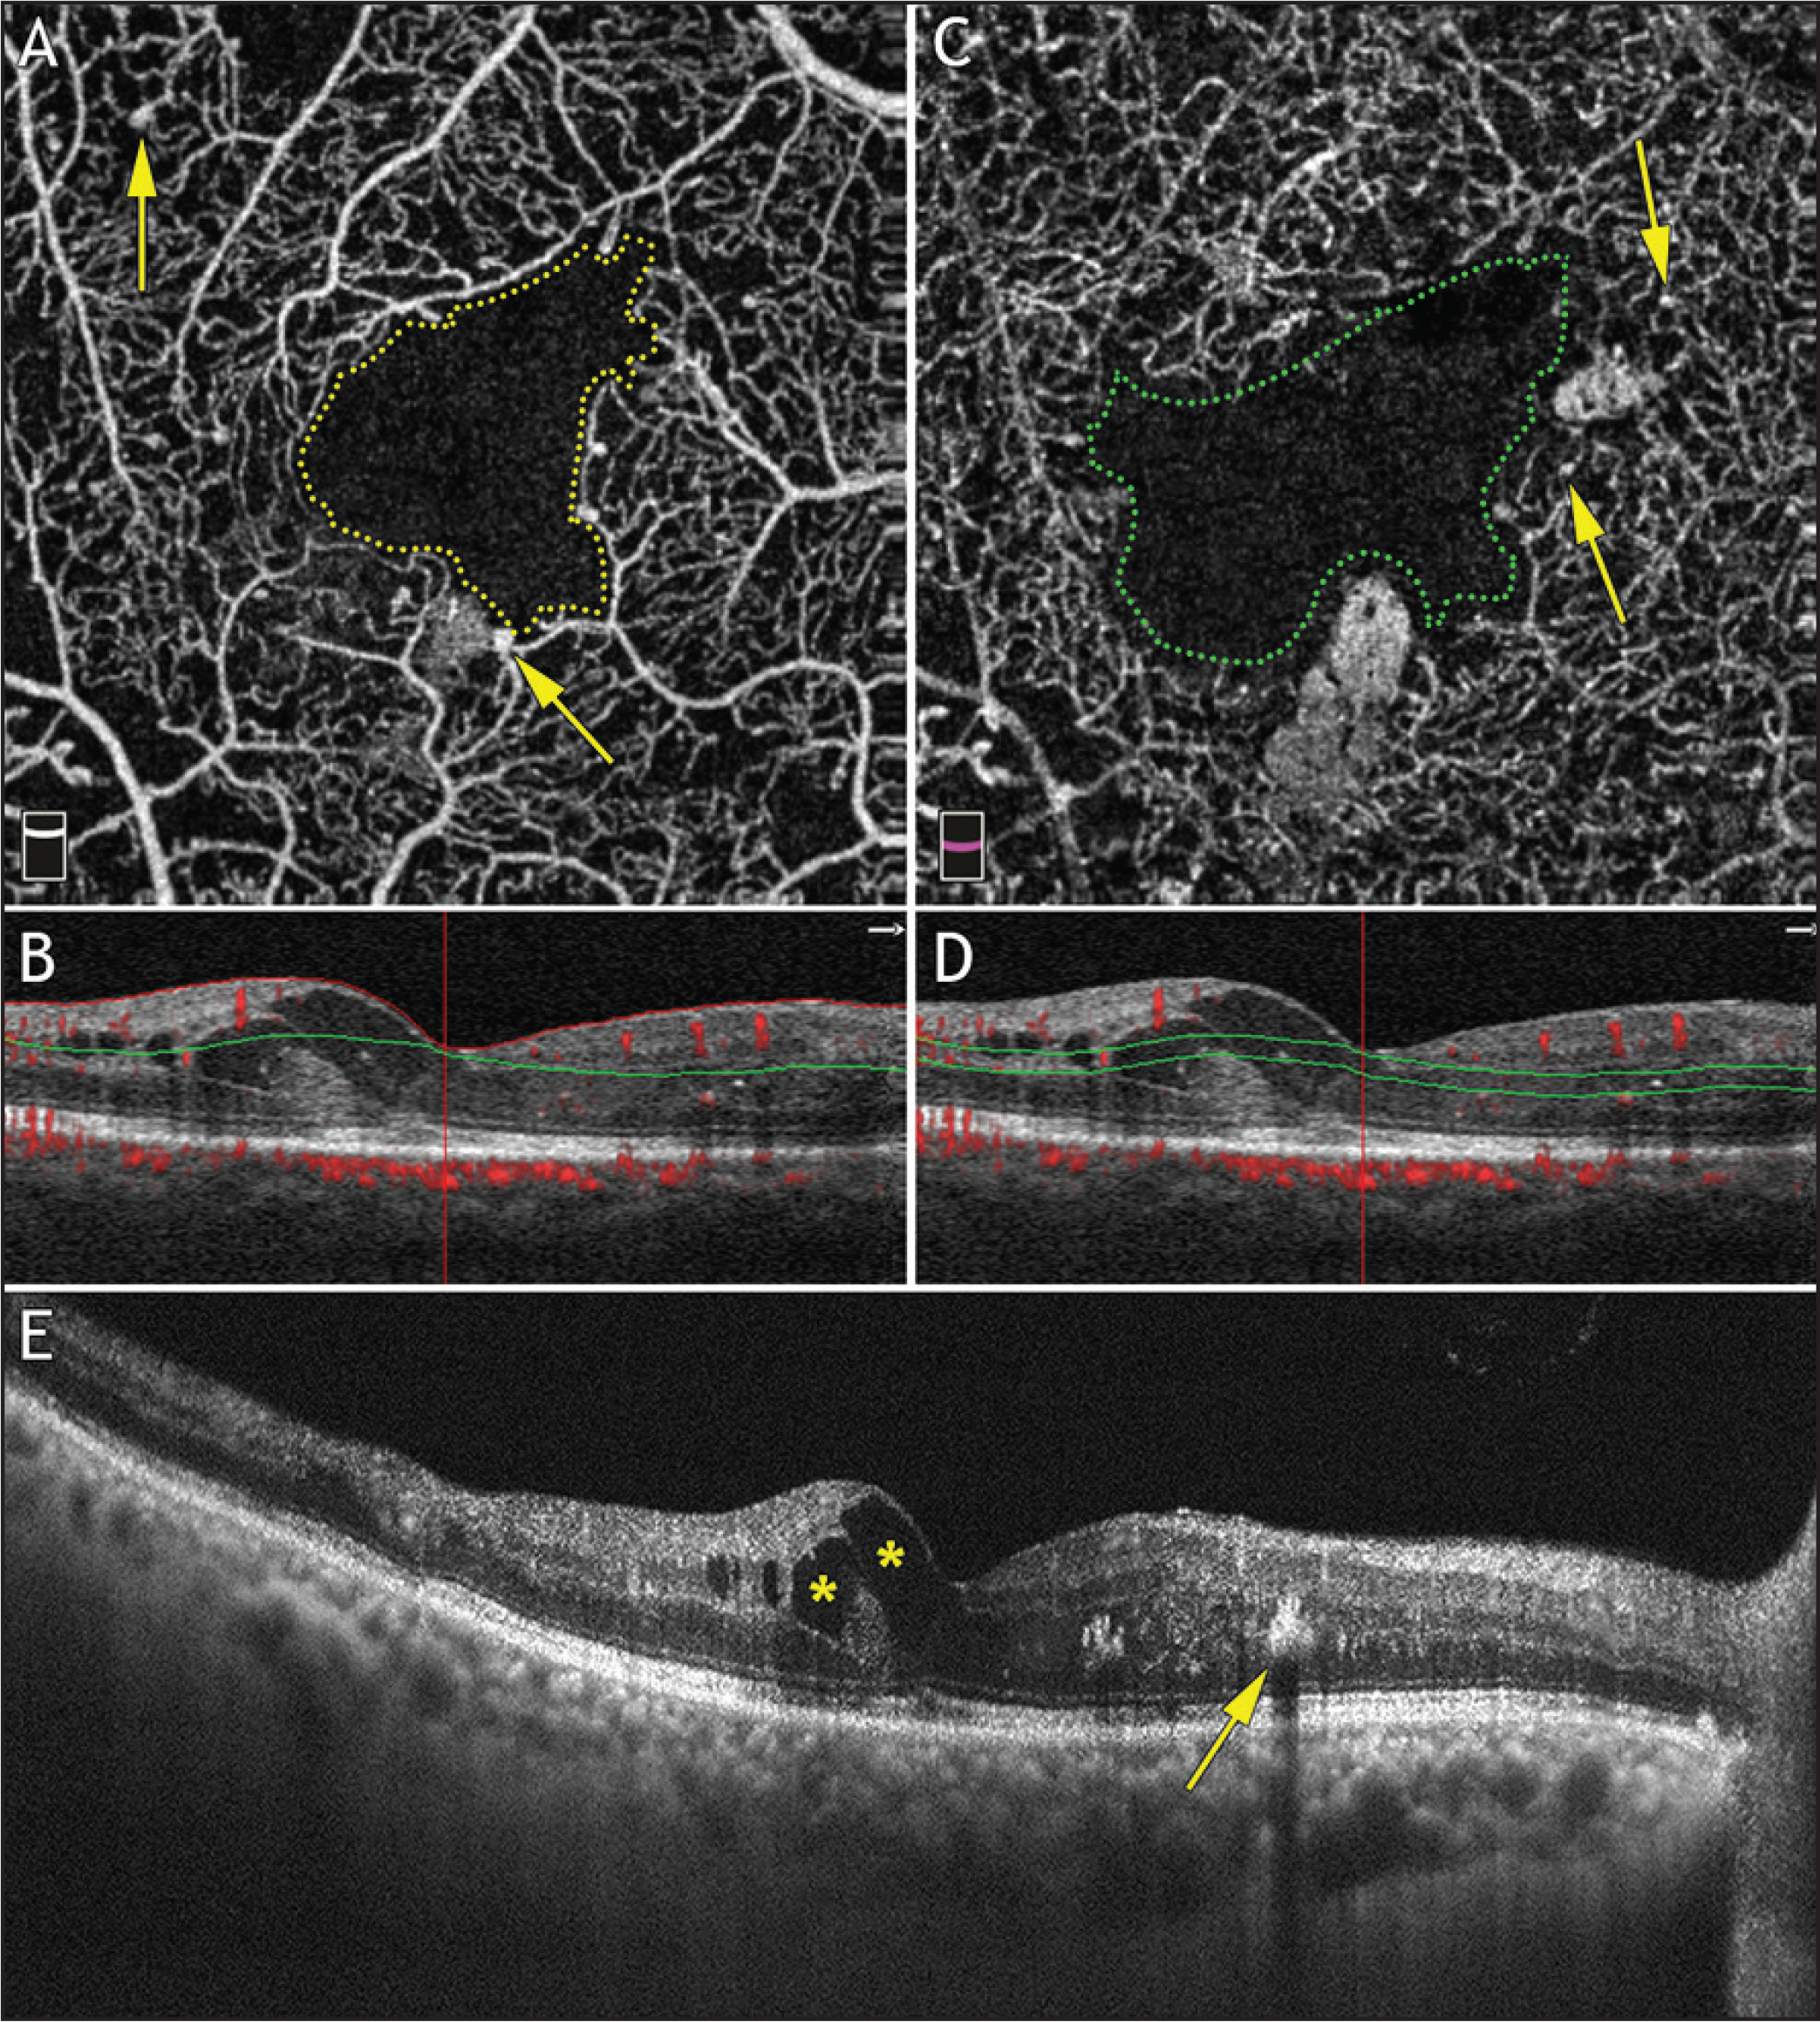 Optical coherence tomography angiography (OCTA) using the spectral-domain Avanti (Optovue, Fremont, CA) with corresponding OCT B-scan of a patient with diabetic macular edema. (A) En face OCTA of the superficial plexus shows foveal avascular zone (FAZ) enlargement (yellow dotted line) and focal vascular dilations that correspond to microaneurysms (yellow arrows). (B) OCT B-scan with superficial retinal plexus segmentation delineated by the red and green lines and OCTA decorrelation signal overlay. (C) Deep plexus segmentation shows further FAZ enlargement (green dotted line) and microaneurysms (yellow arrows). (D) OCT B-scan with deep retinal plexus segmentation delineated by the two parallel green lines. (E) Corresponding high-definition OCT B-scan line shows hyporeflective areas that correspond to intraretinal cysts (yellow asterisks) and a hyperreflective area that corresponds to hard exudates (yellow arrow).